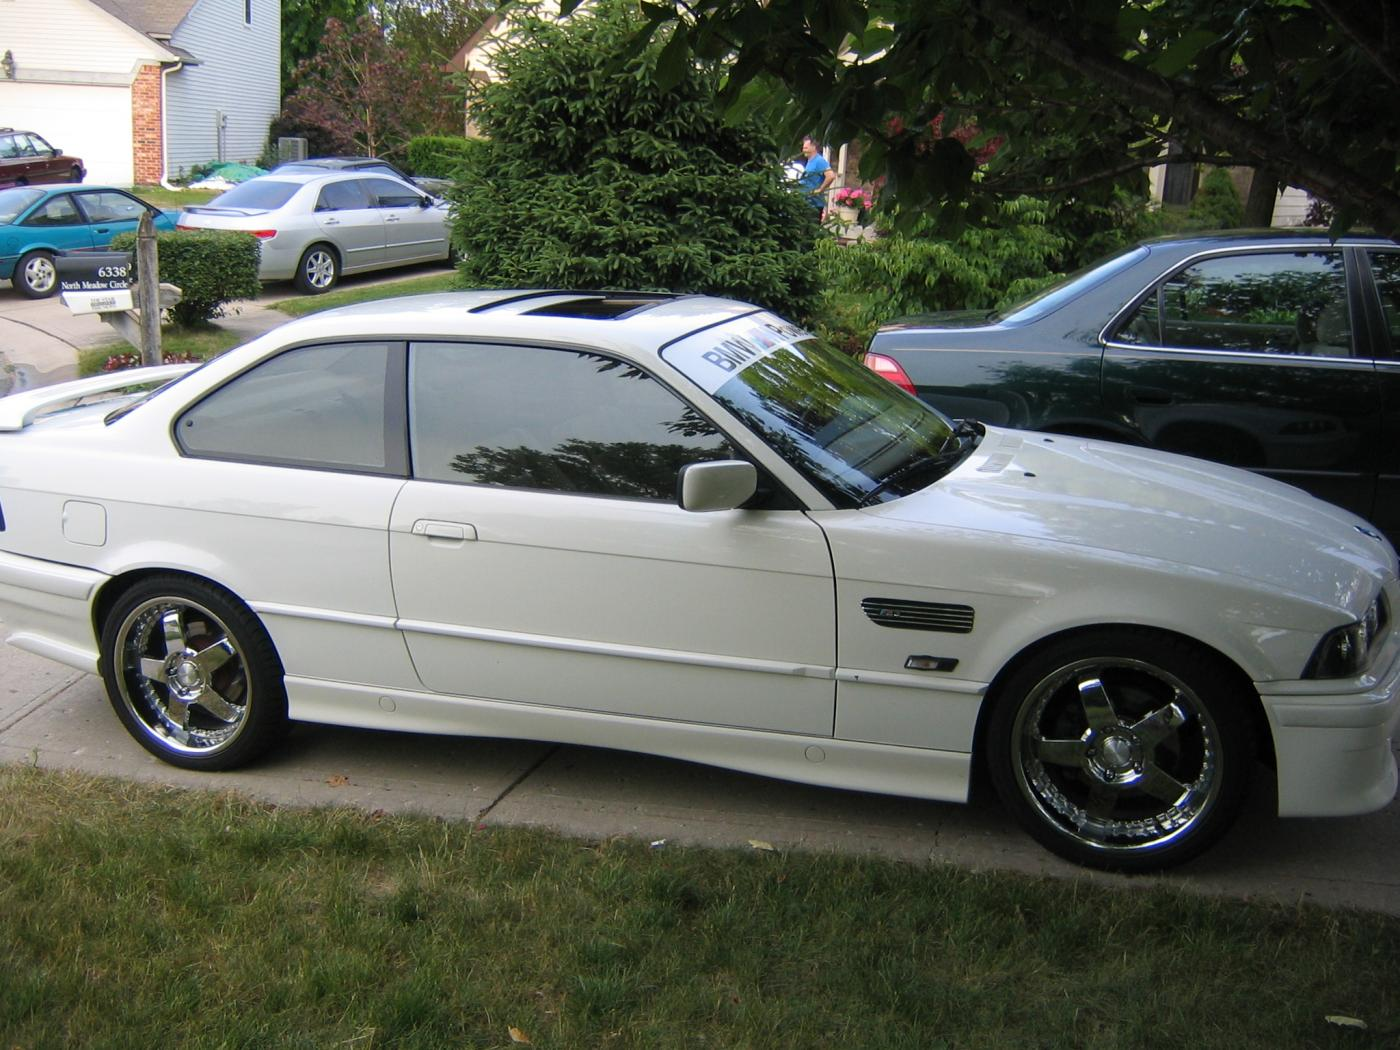 1996 Bmw M3 coupe (e36) – pictures, information and specs - Auto ...